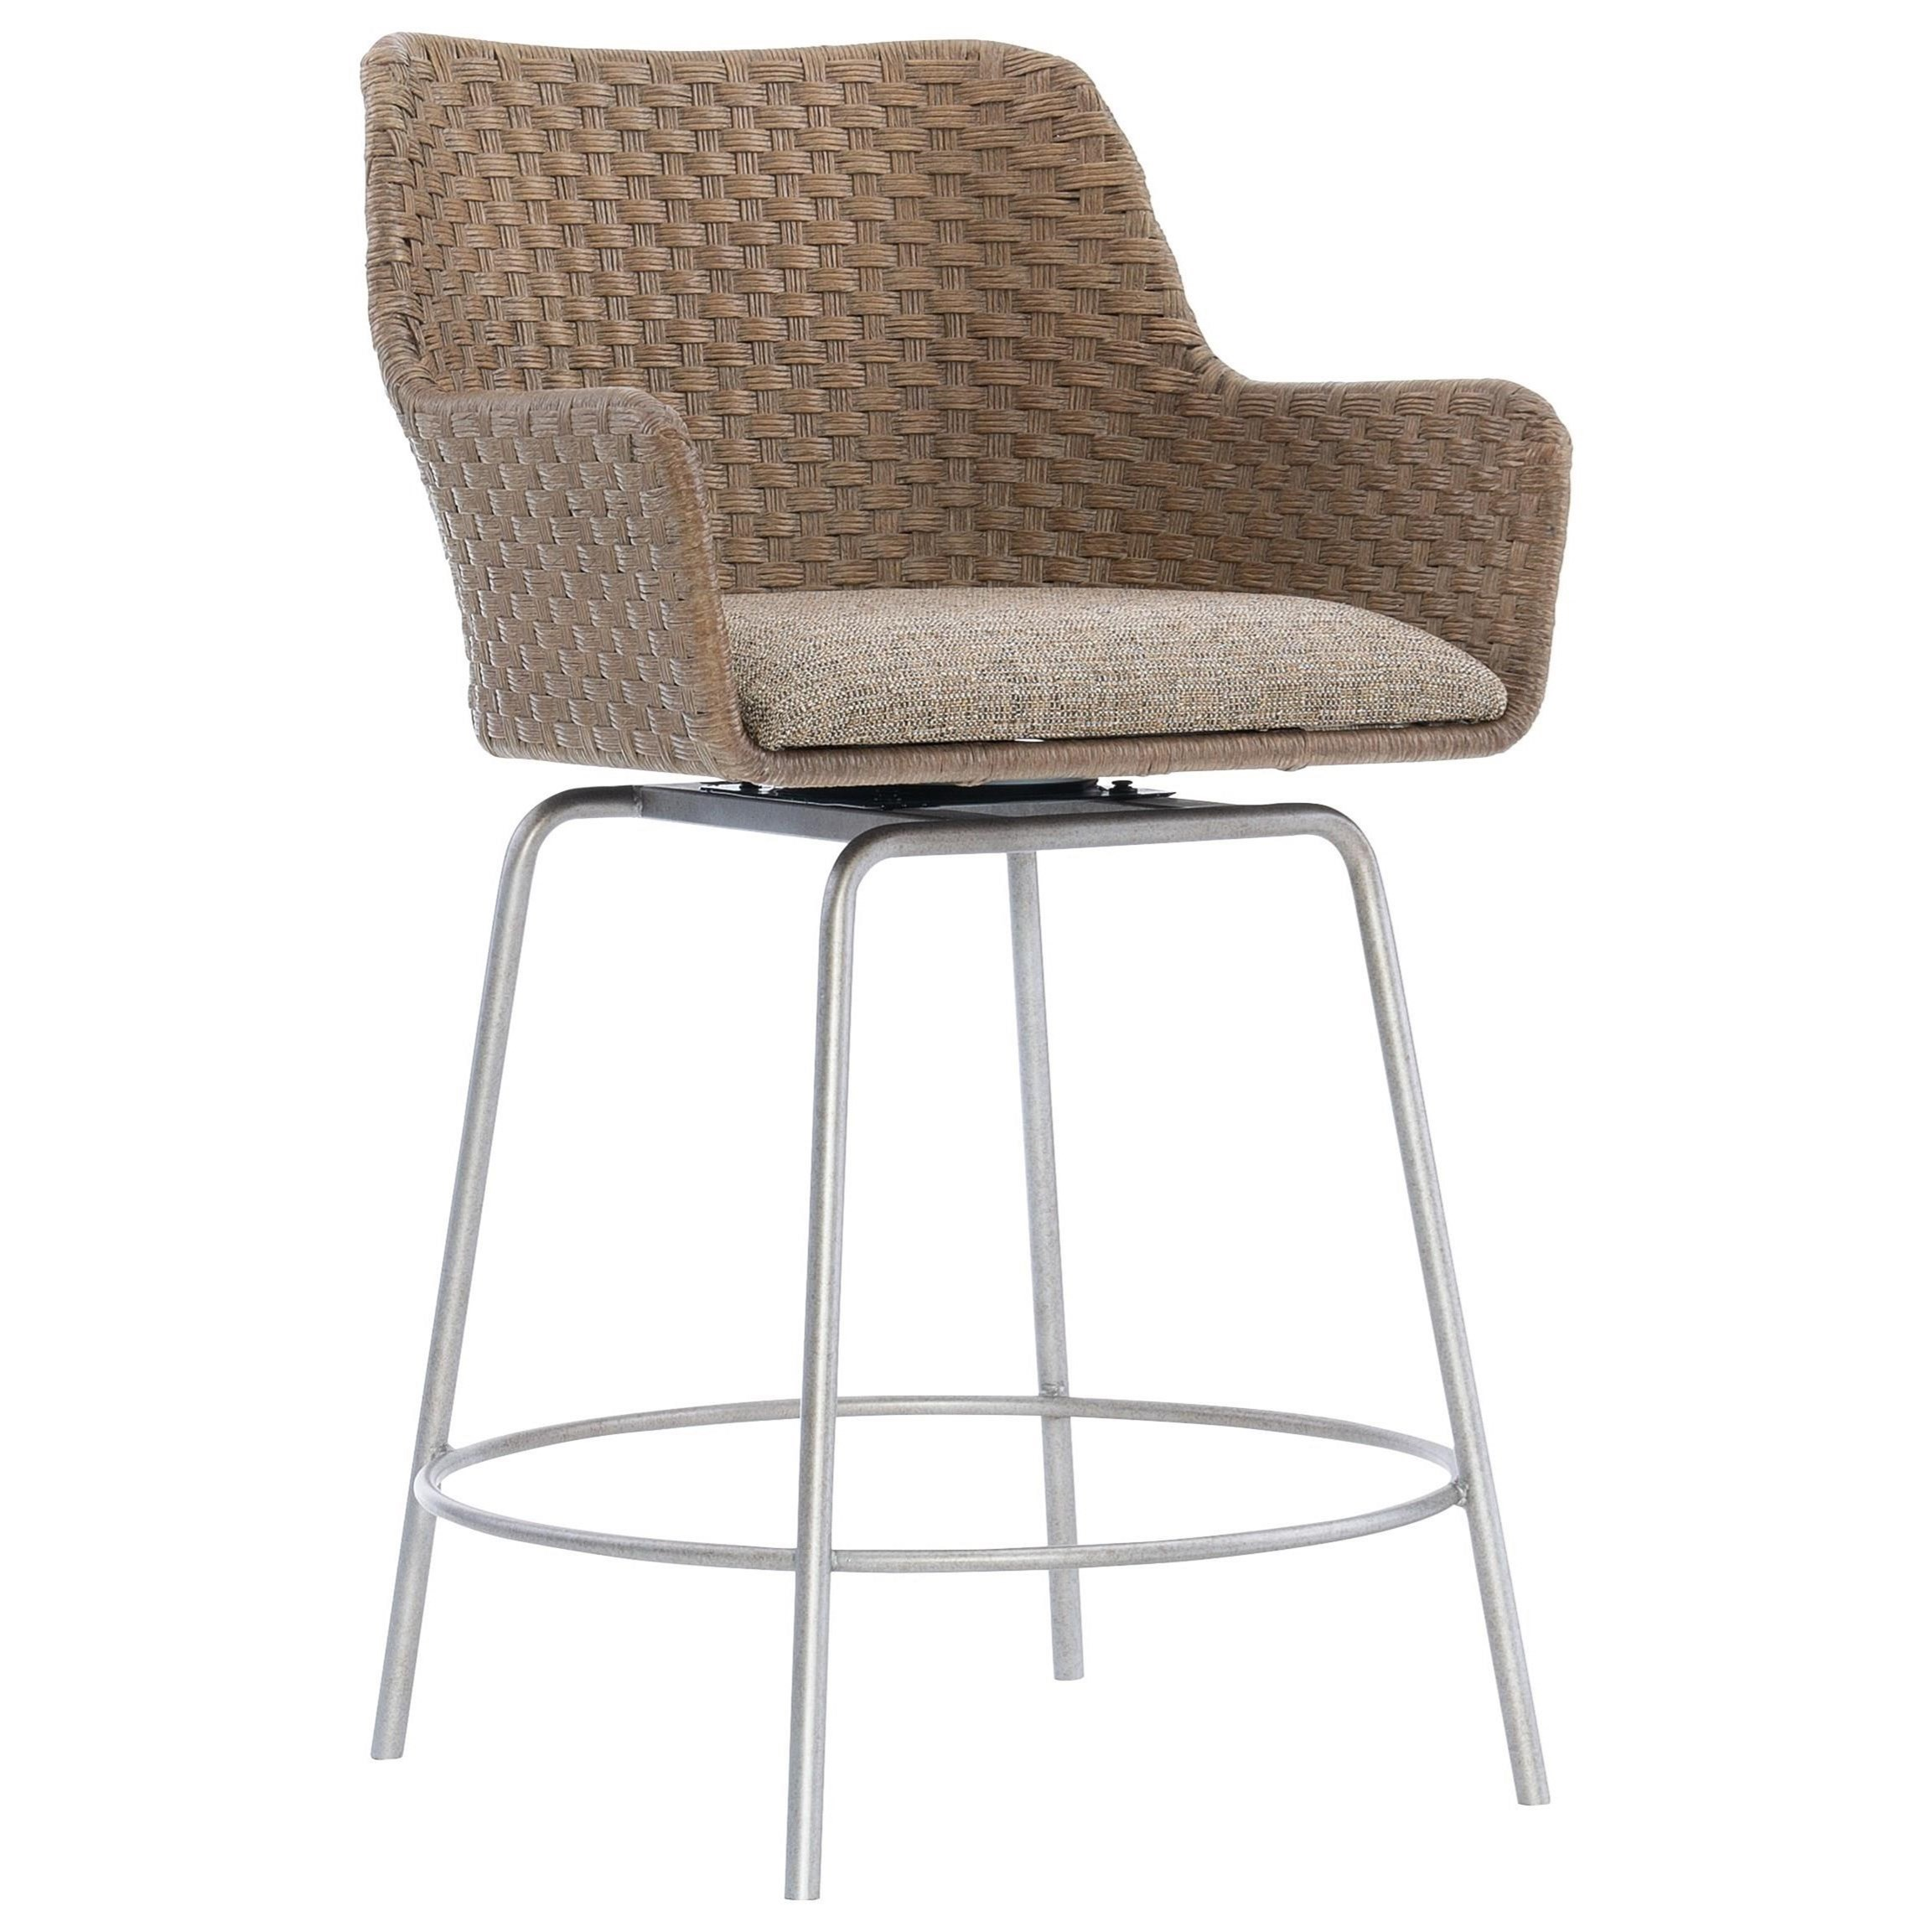 Loft - Logan Square Meade Swivel Counter Stool at Williams & Kay